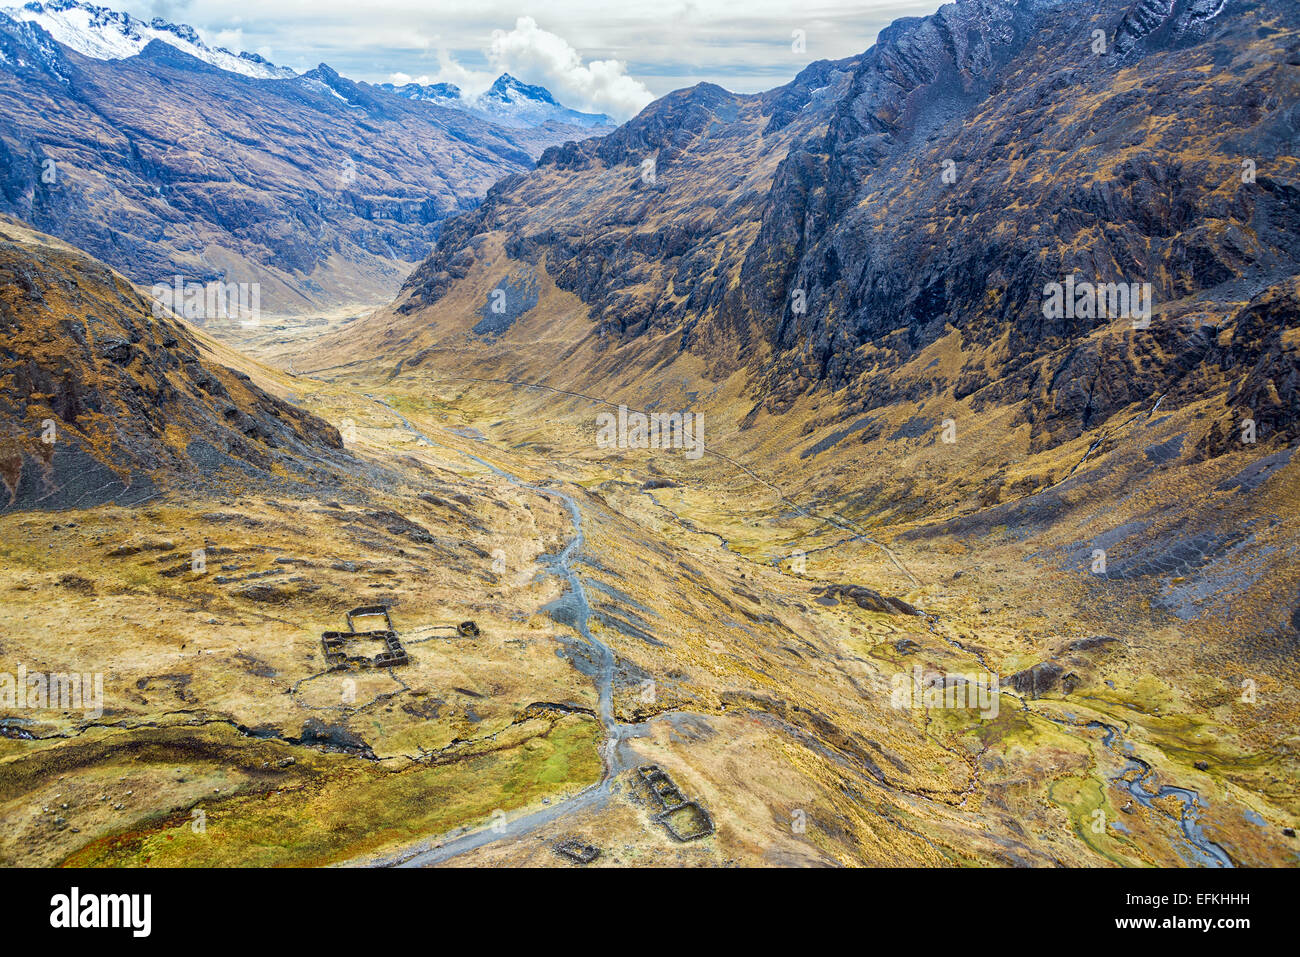 Looking down on Incan Ruins in a valley as seen from high up in the Andes mountains of the Cordillera Real near - Stock Image